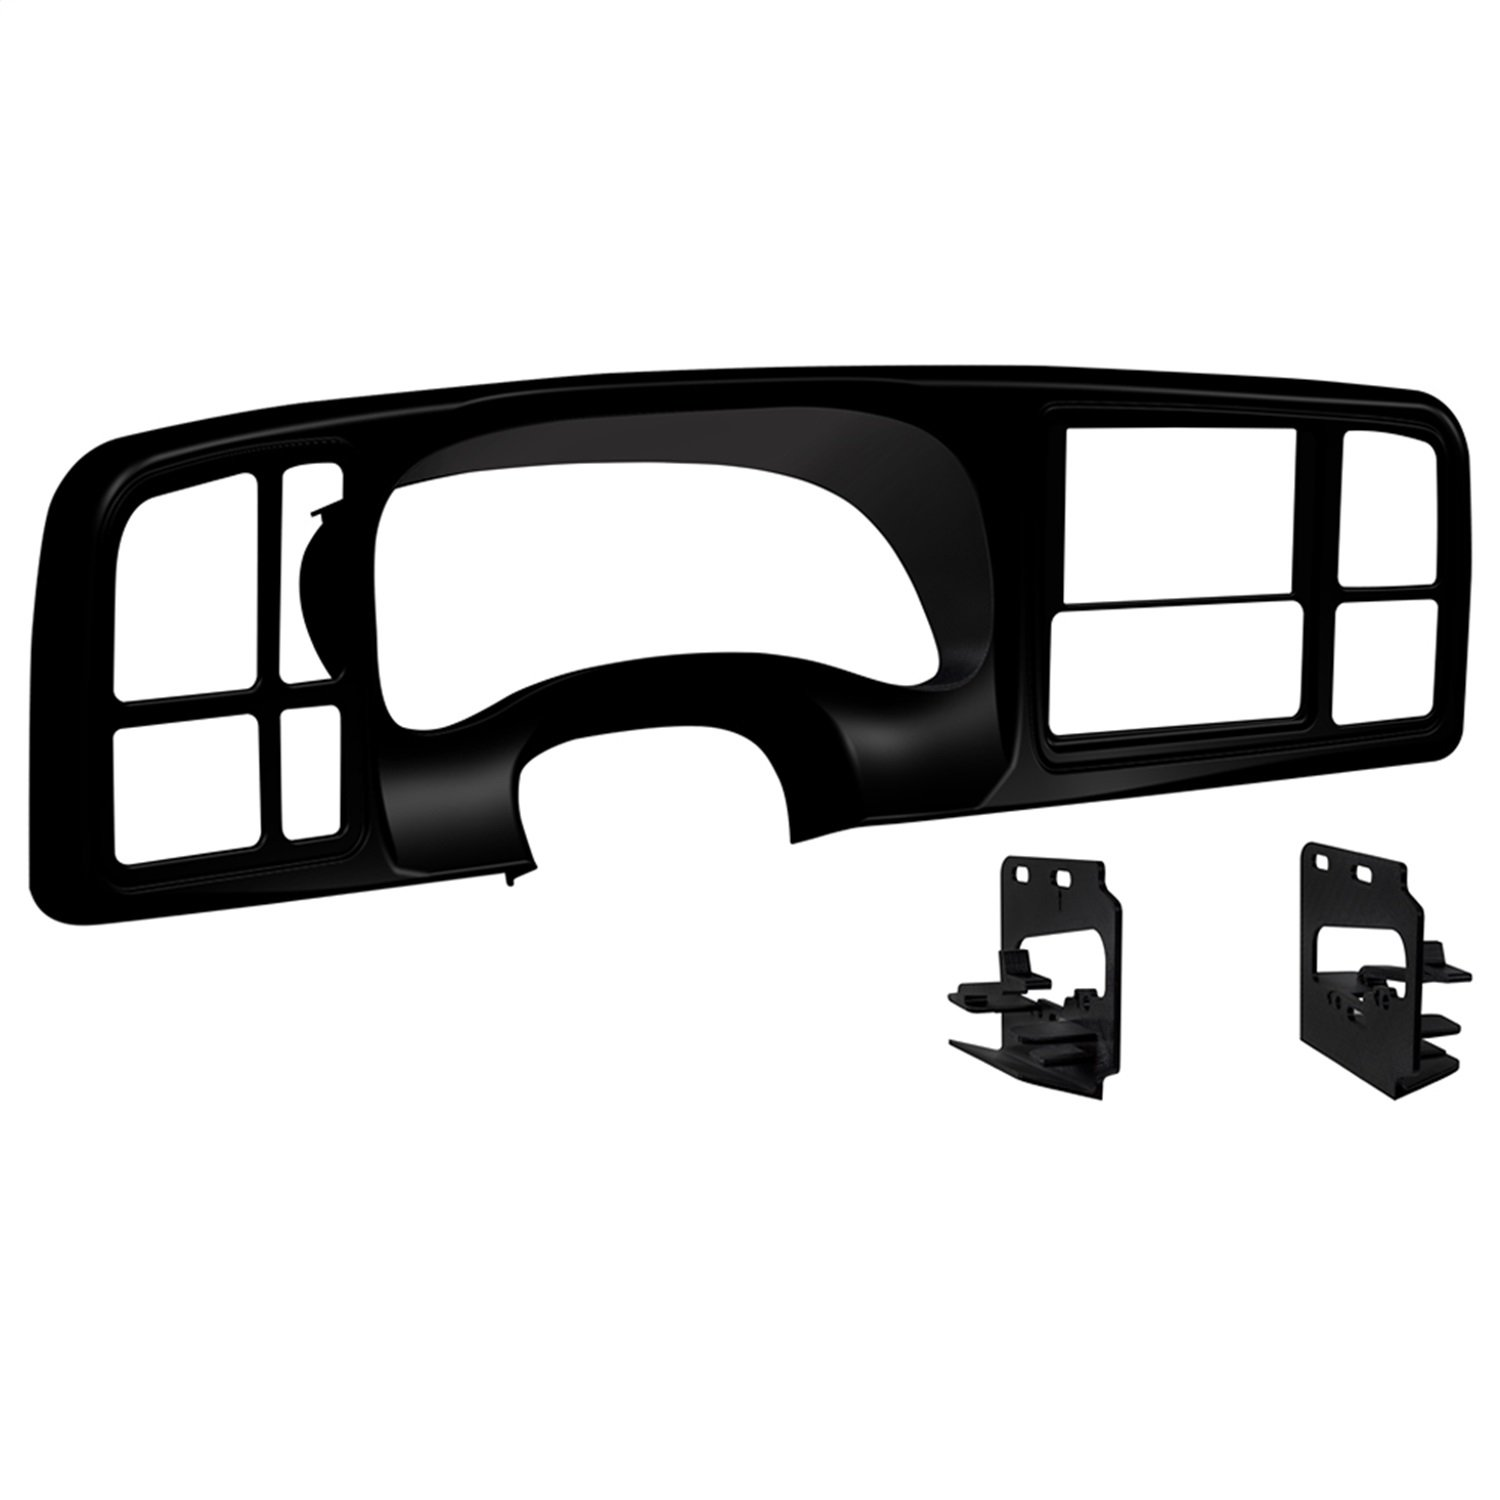 METRA DP-3002B Double DIN Dash Kit for 1999-2002 GM Full-Size Trucks//SUVs Matte Black